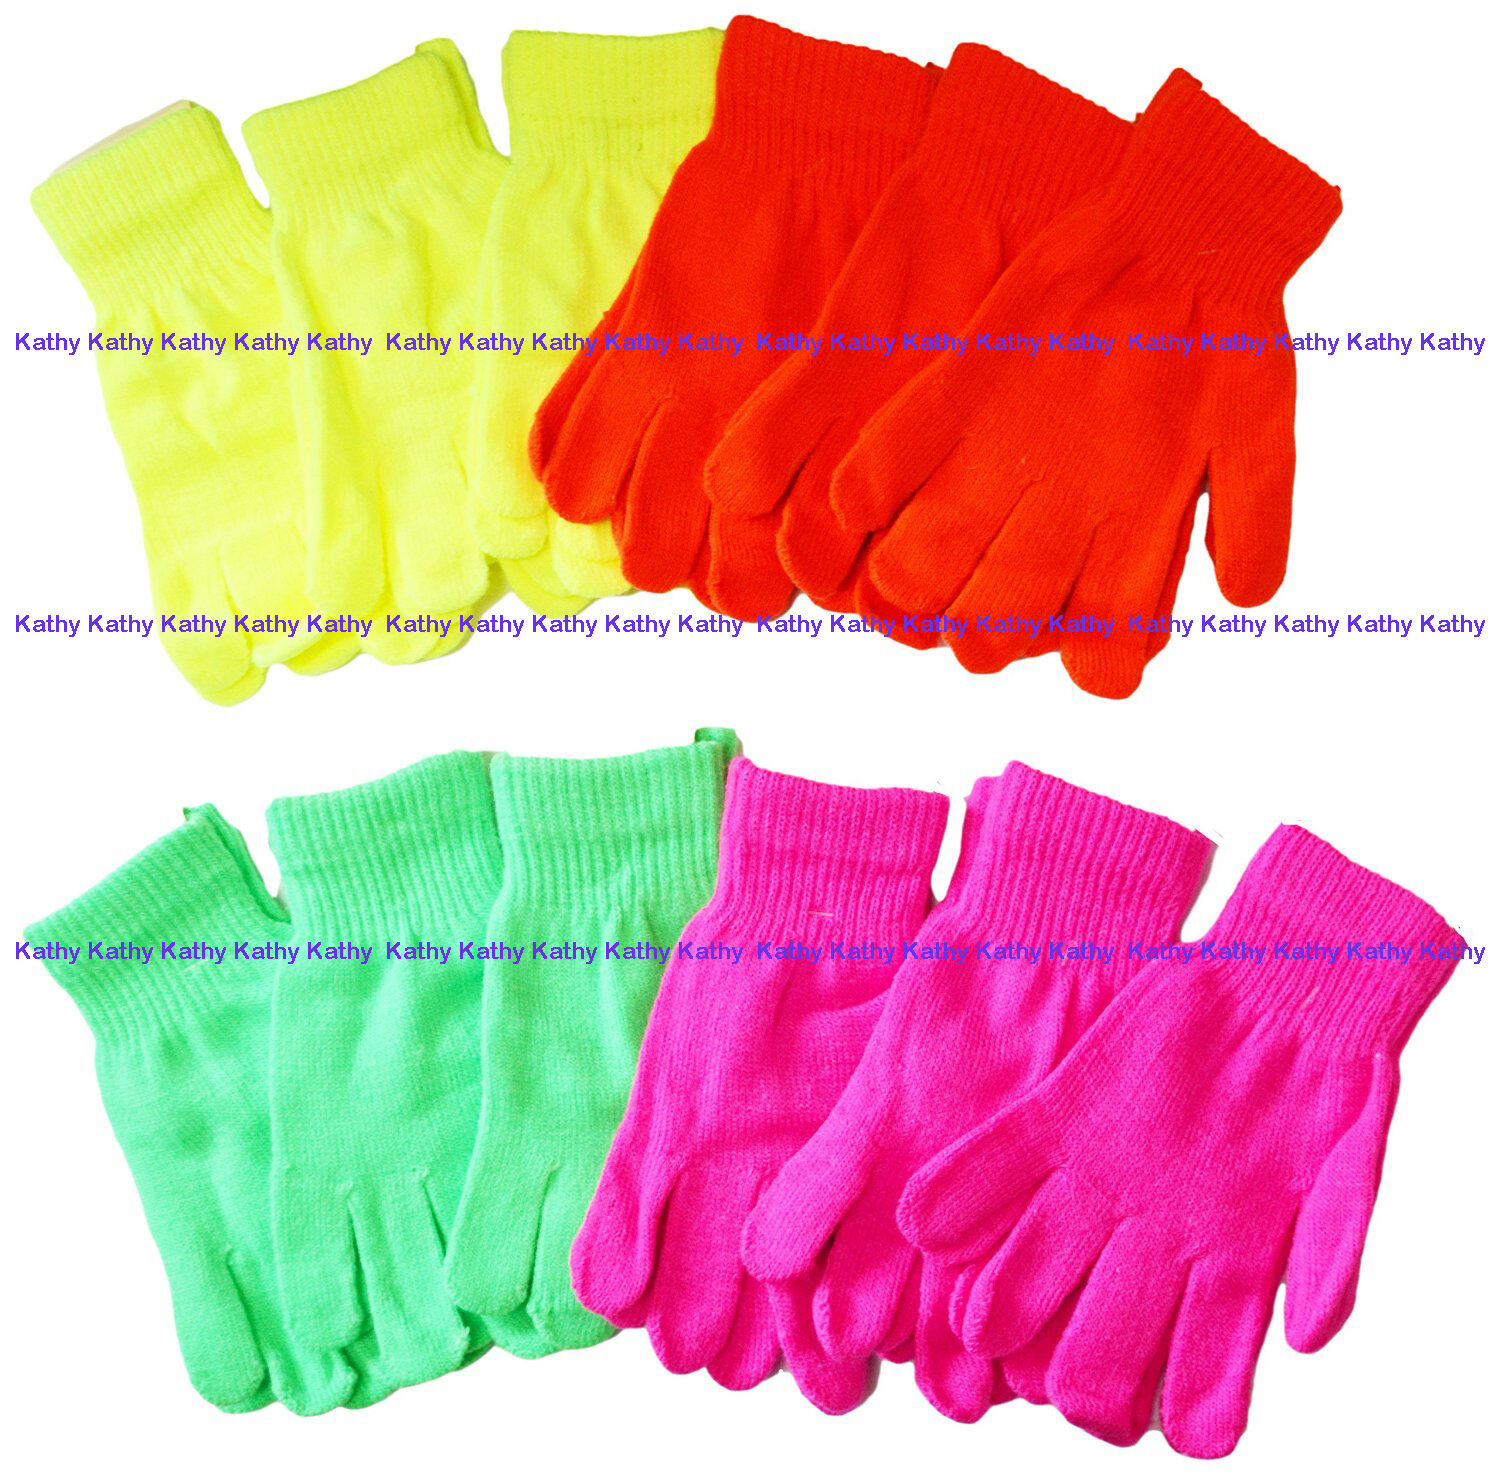 Assorted Neon Bright Color Knit Magic Ski Sports Gloves Unisex Wholesale Lot NY